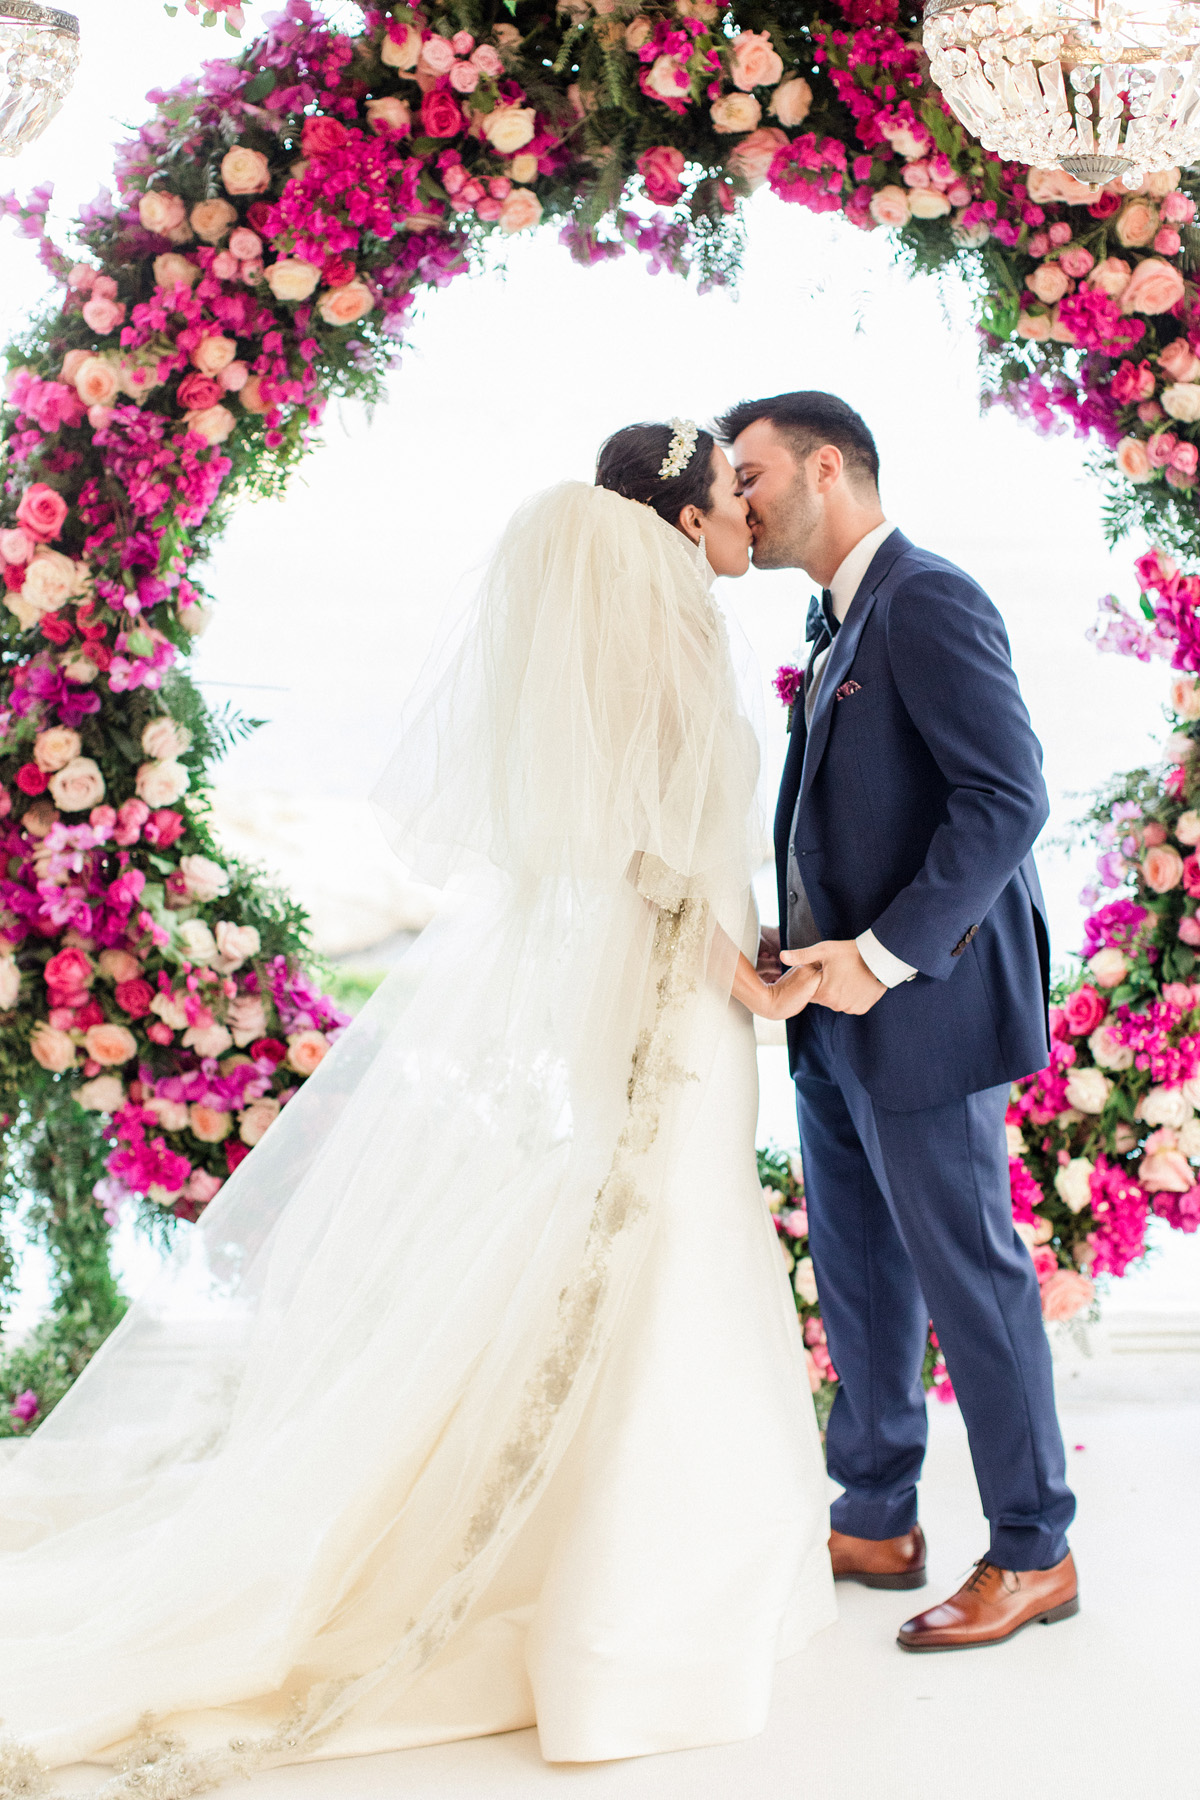 wedding kiss and pink giant wreath backdrop